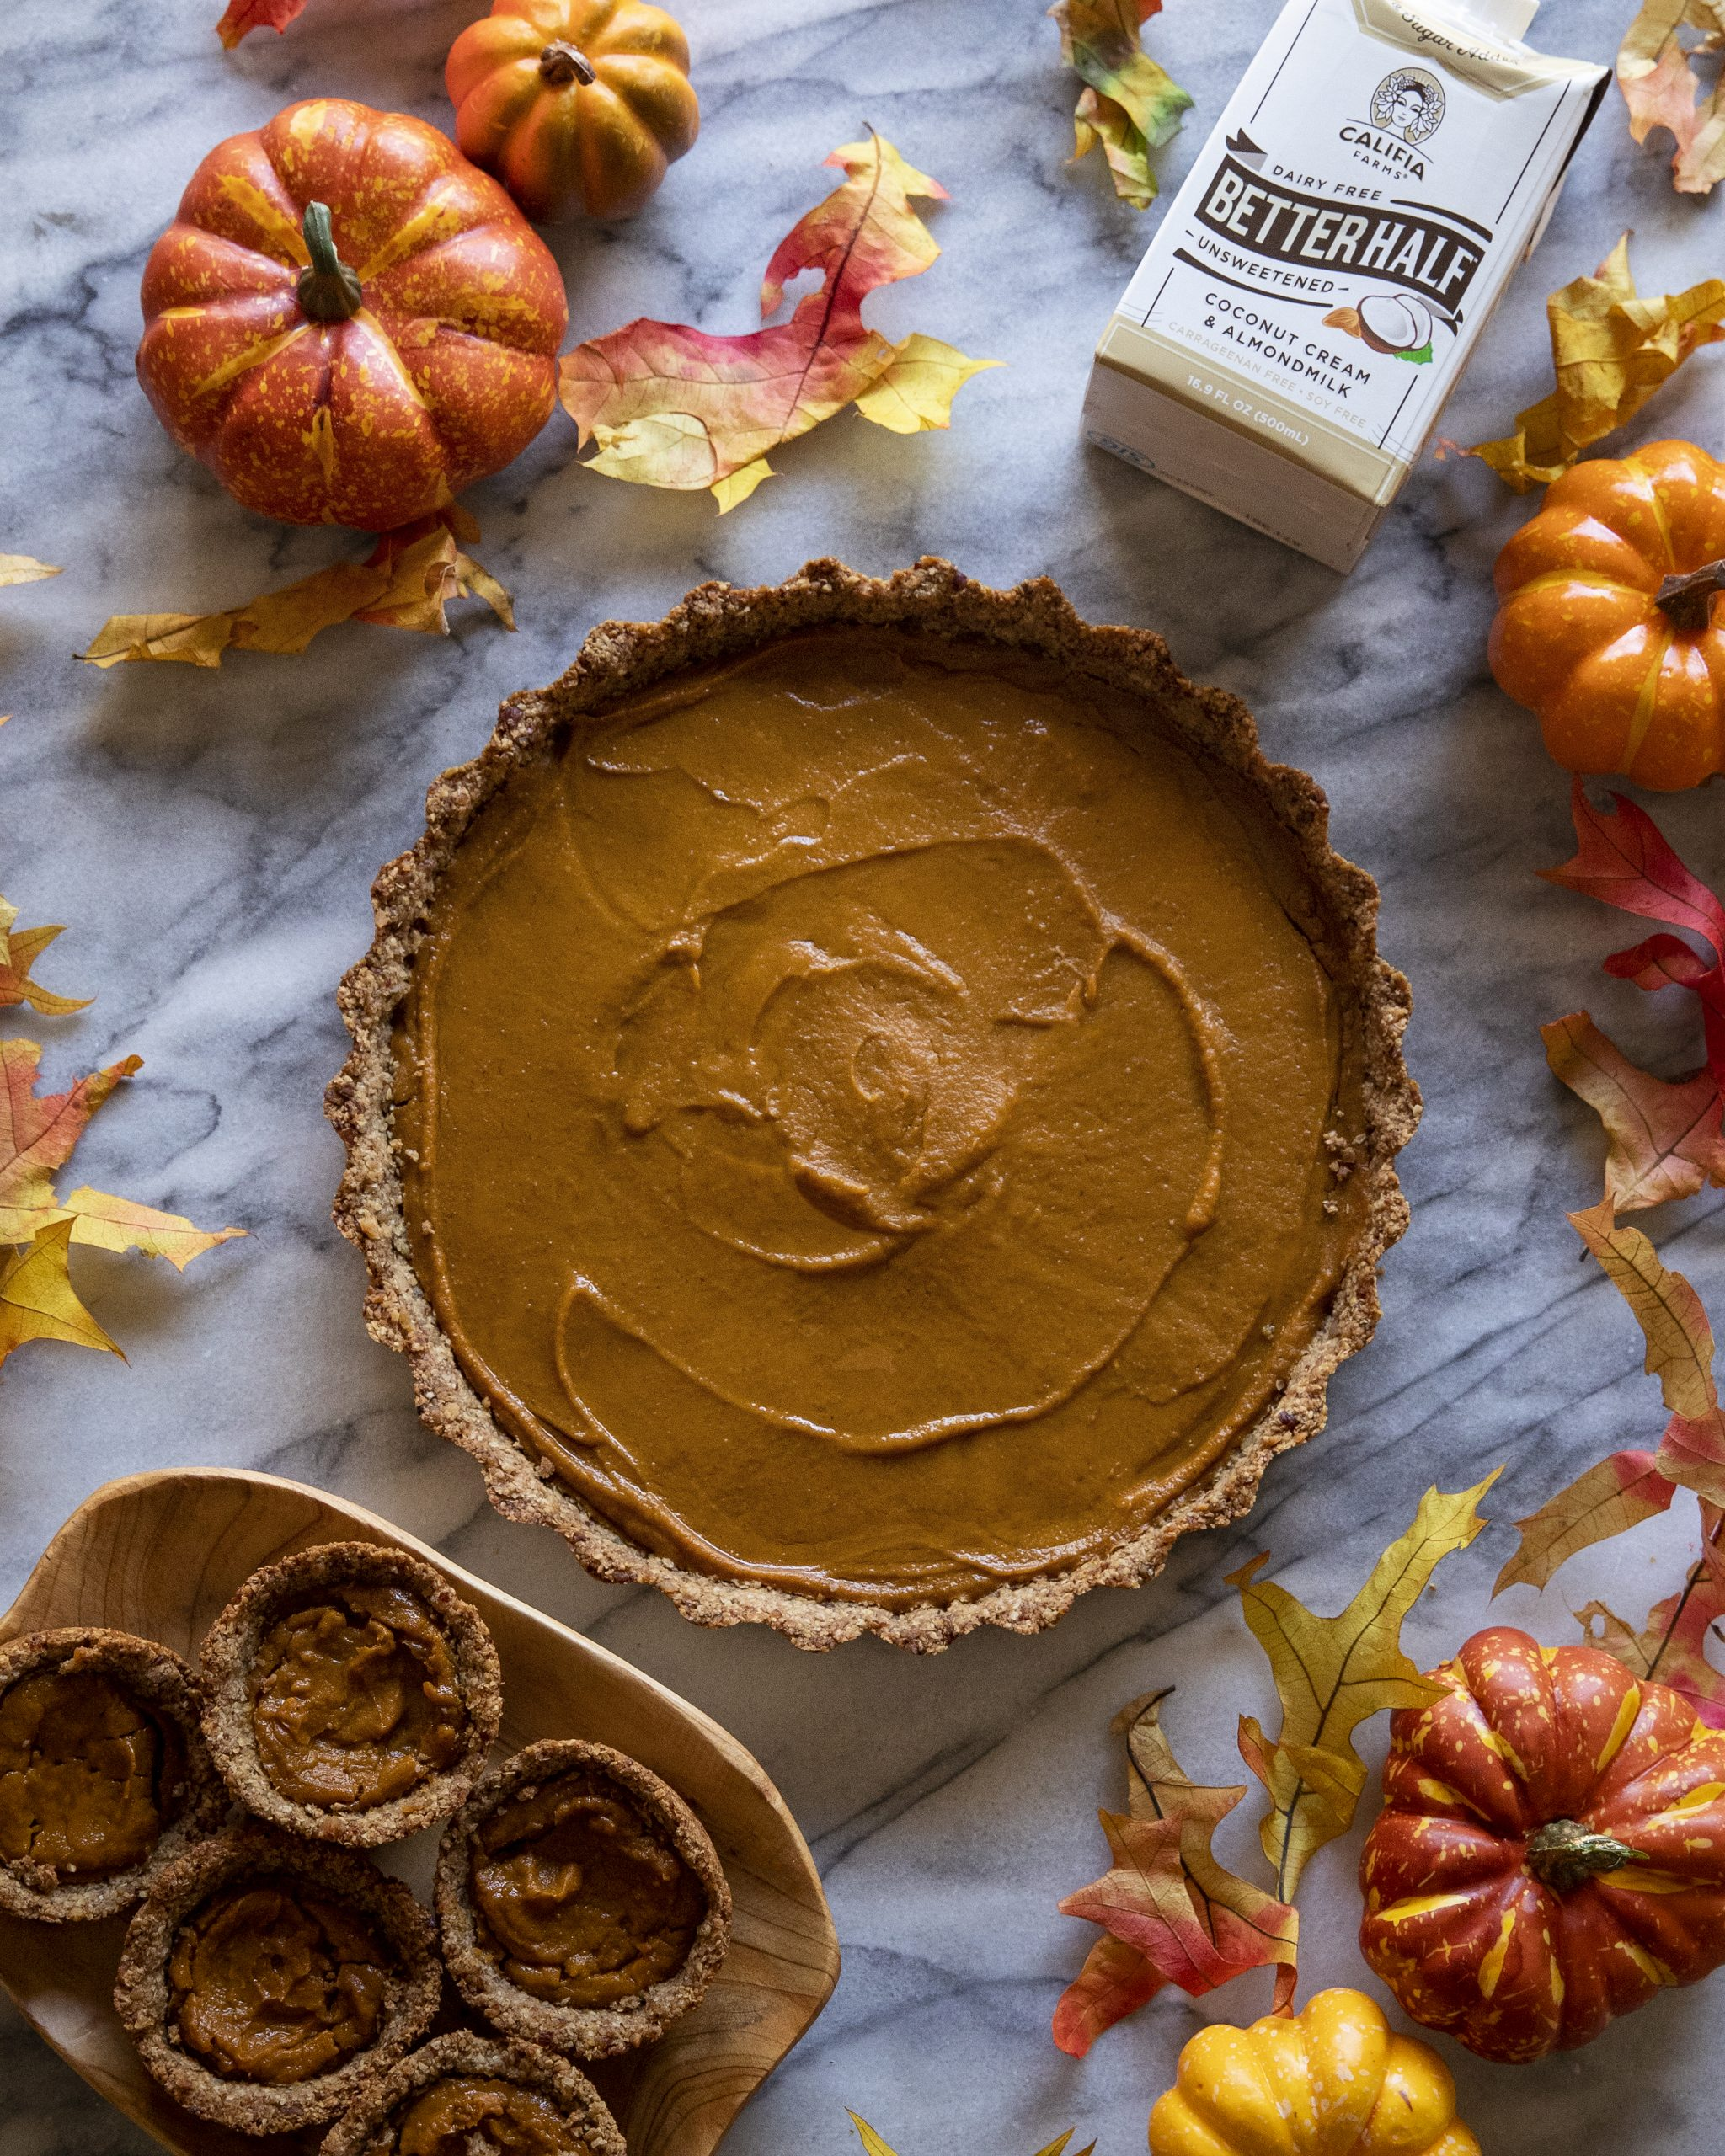 Vegan Pumpkin Pie with Oat Pecan Crust